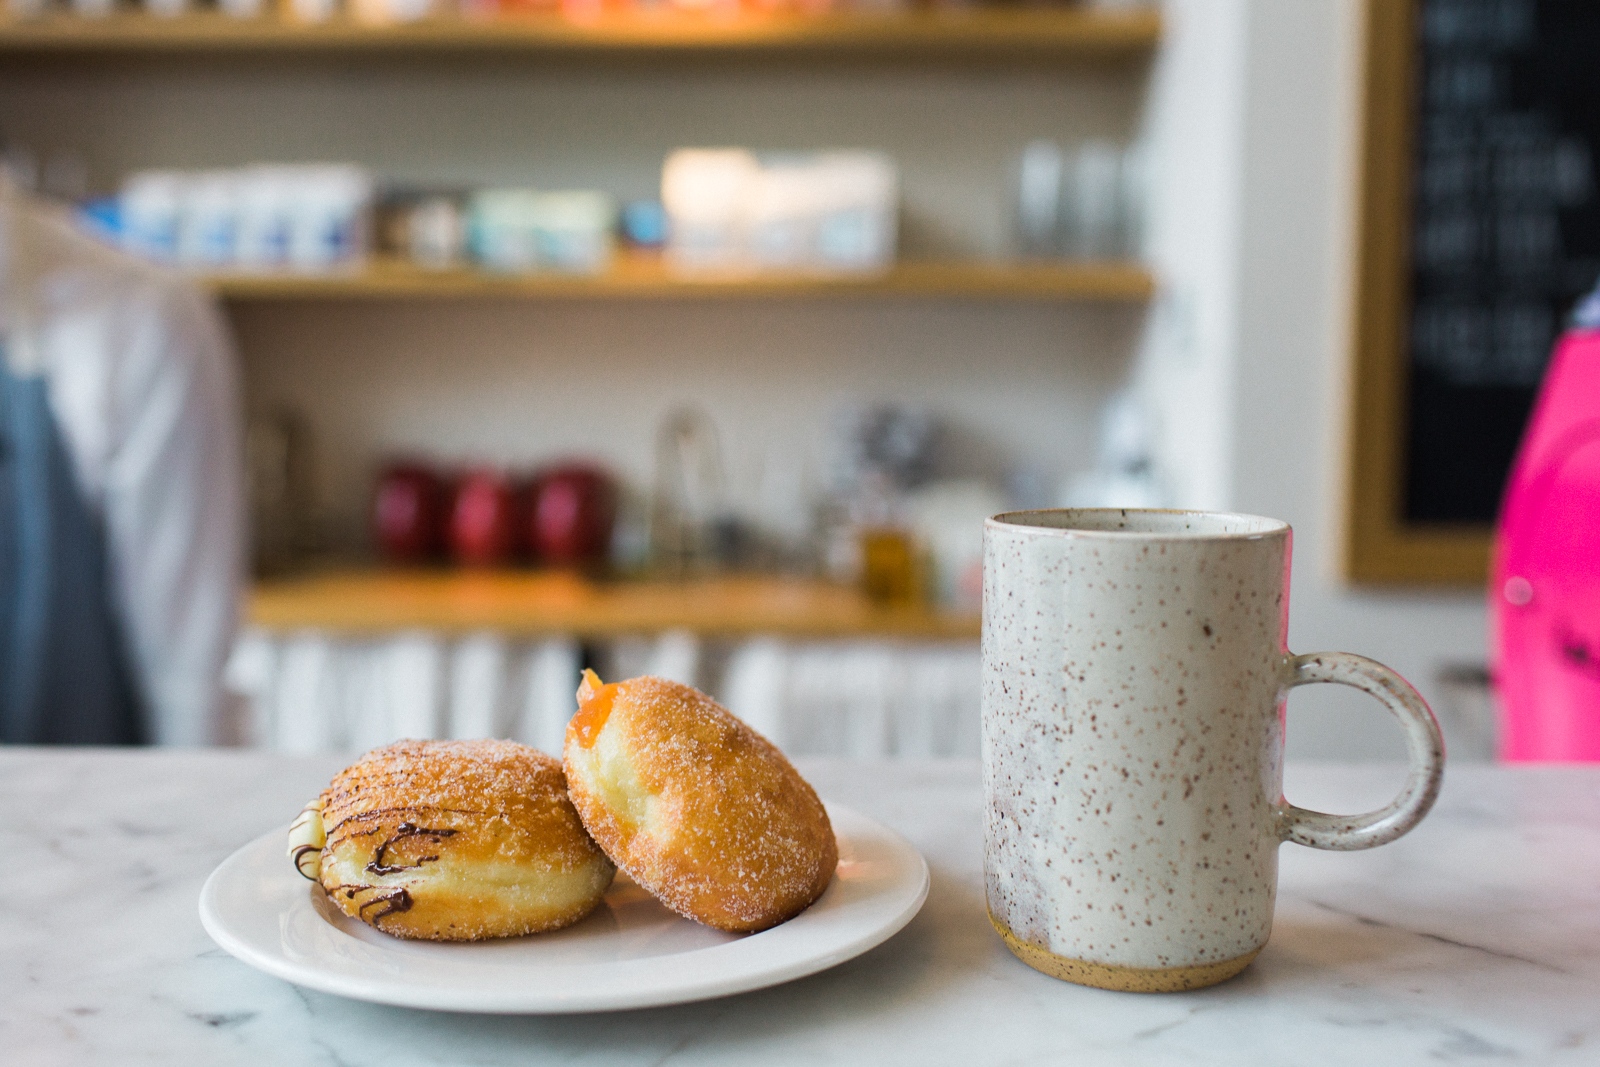 General Porpoise Doughnuts and Coffee